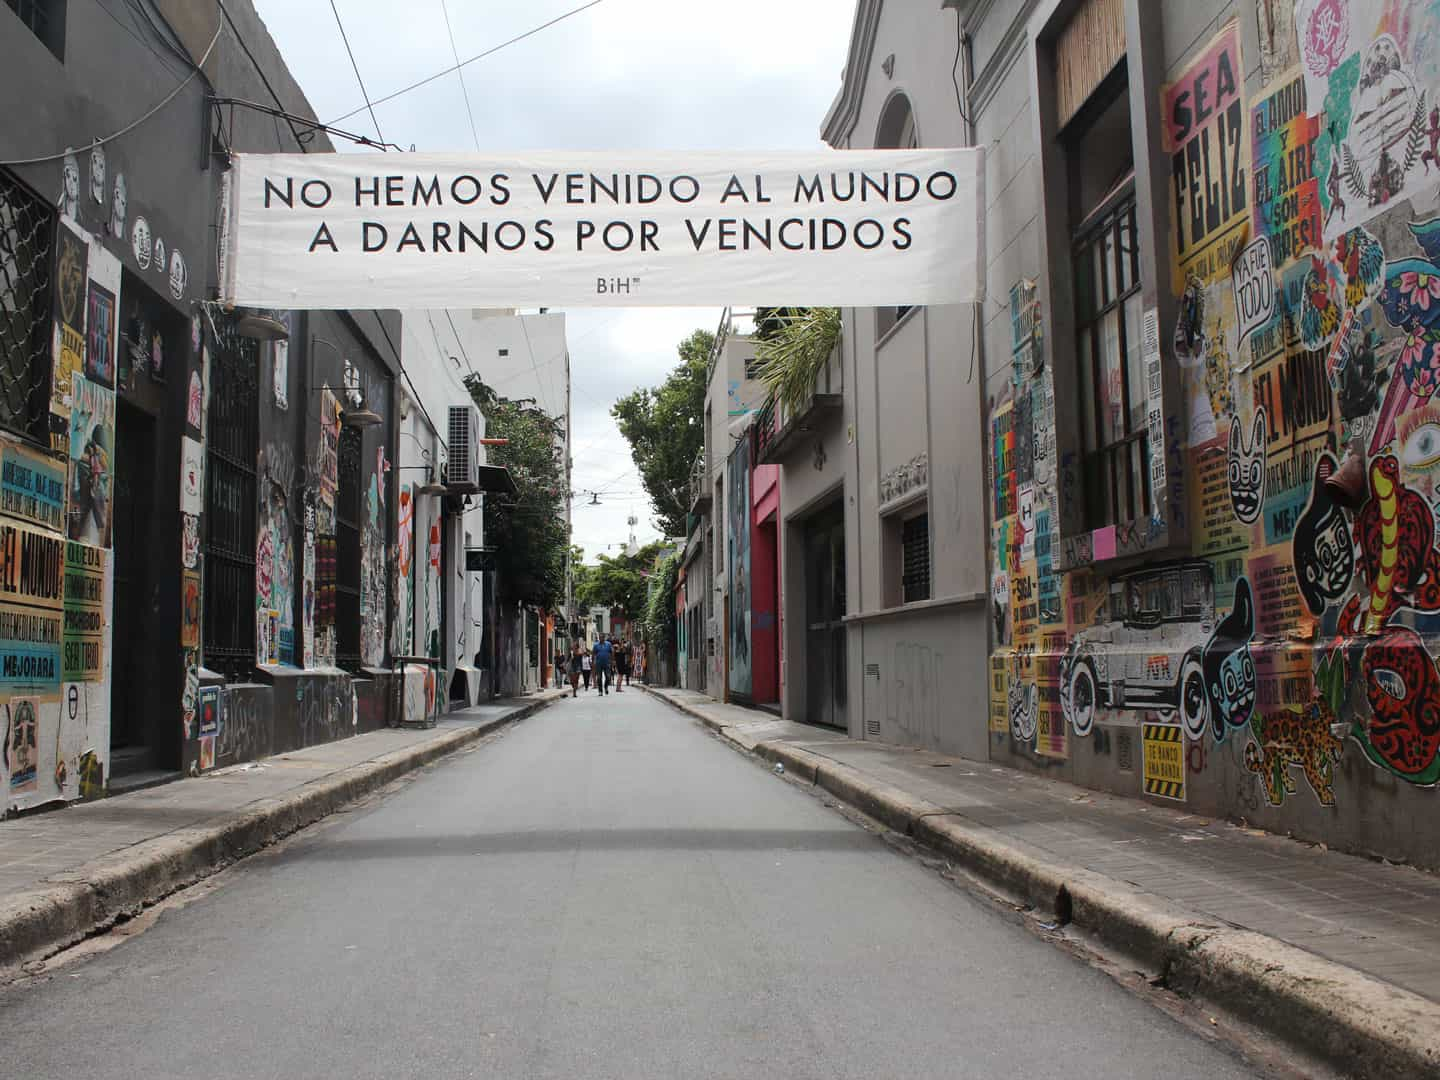 Street art in Palermo neighborhood, one of the most trendy areas in Buenos Aires